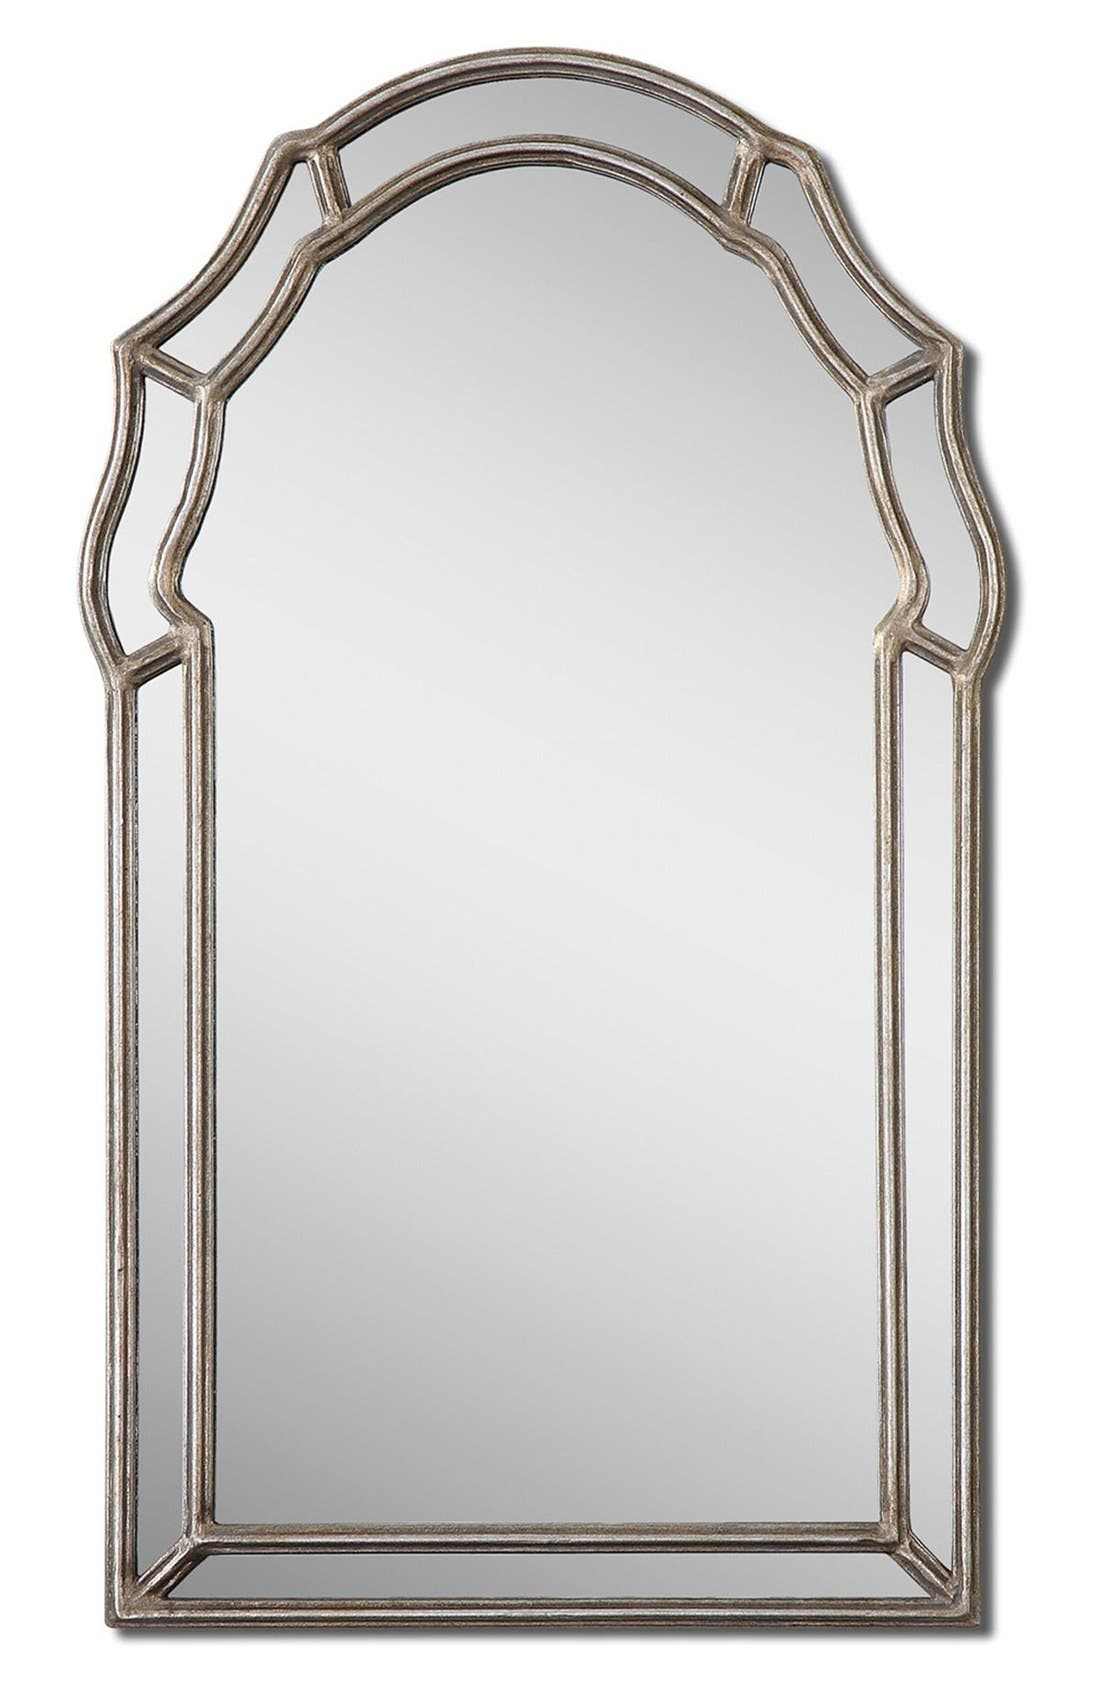 'Petrizzi' Arch Mirror,                             Main thumbnail 1, color,                             020